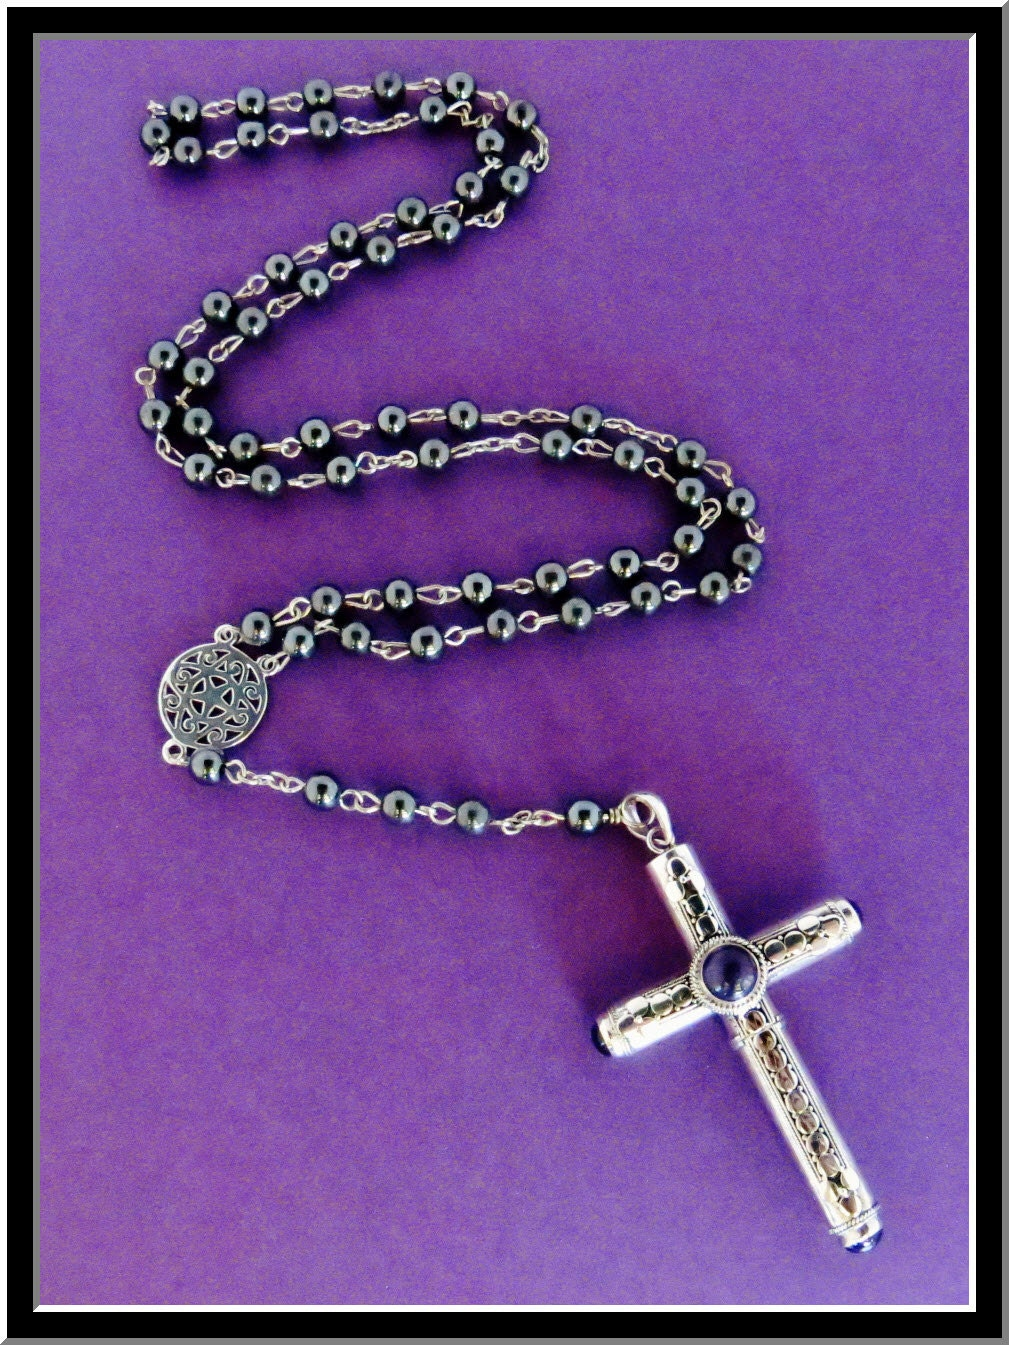 cruel intentions rosary stash necklace amethyst sterling